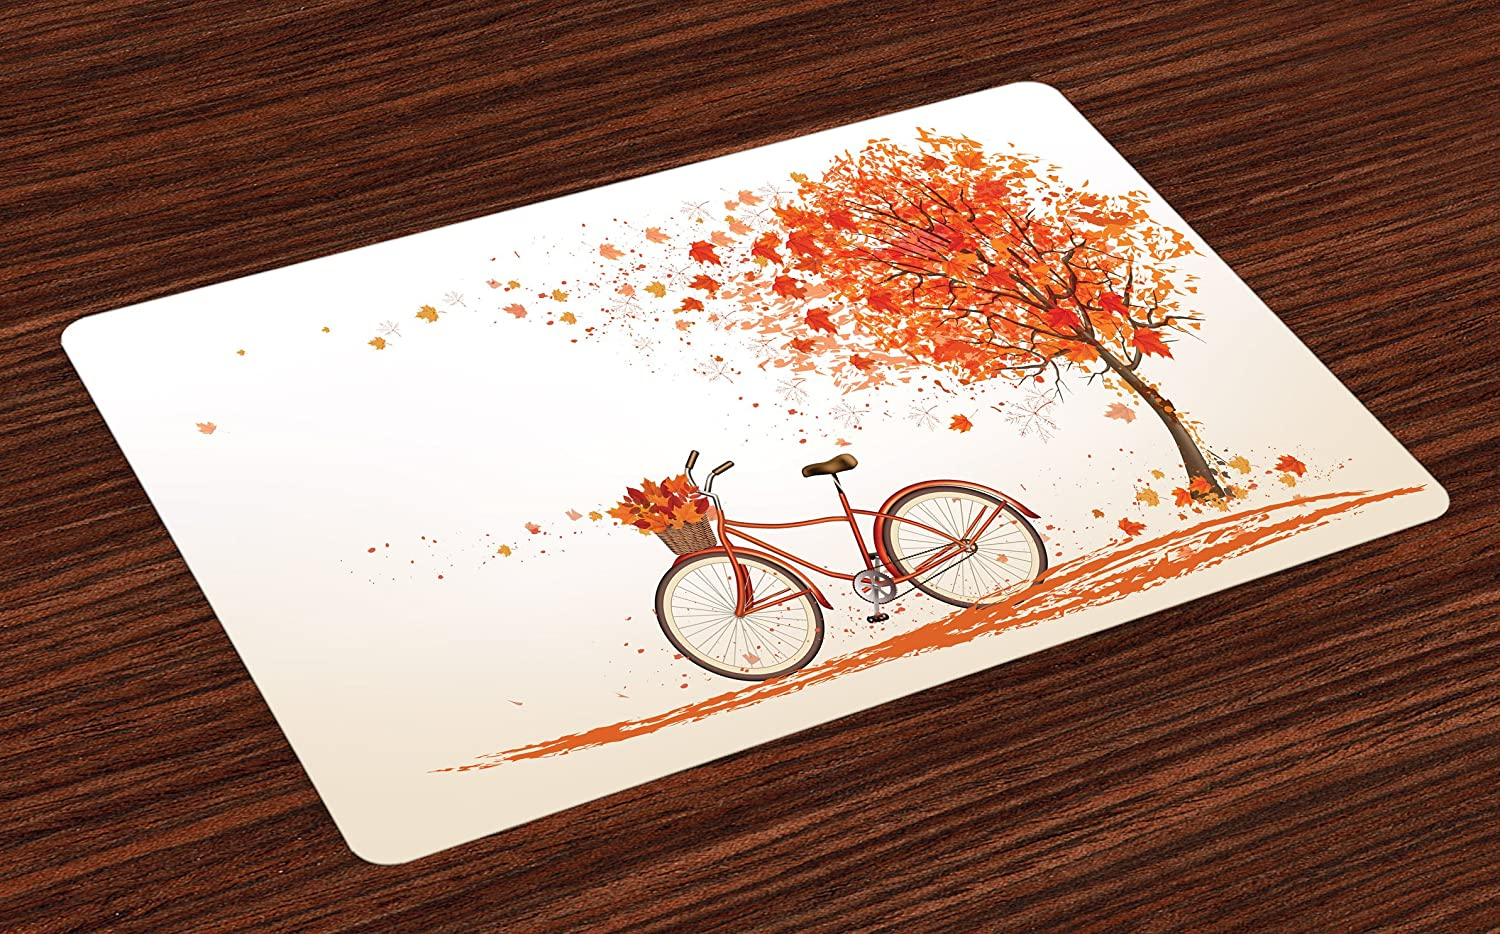 Ambesonne Bicycle Place Mats Set of 4, Autumn Tree with Aged Old Bike and Fall Tree November Day Fall Season Park Nature Theme, Washable Fabric Placemats for Dining Room Kitchen Table Decor, Orange